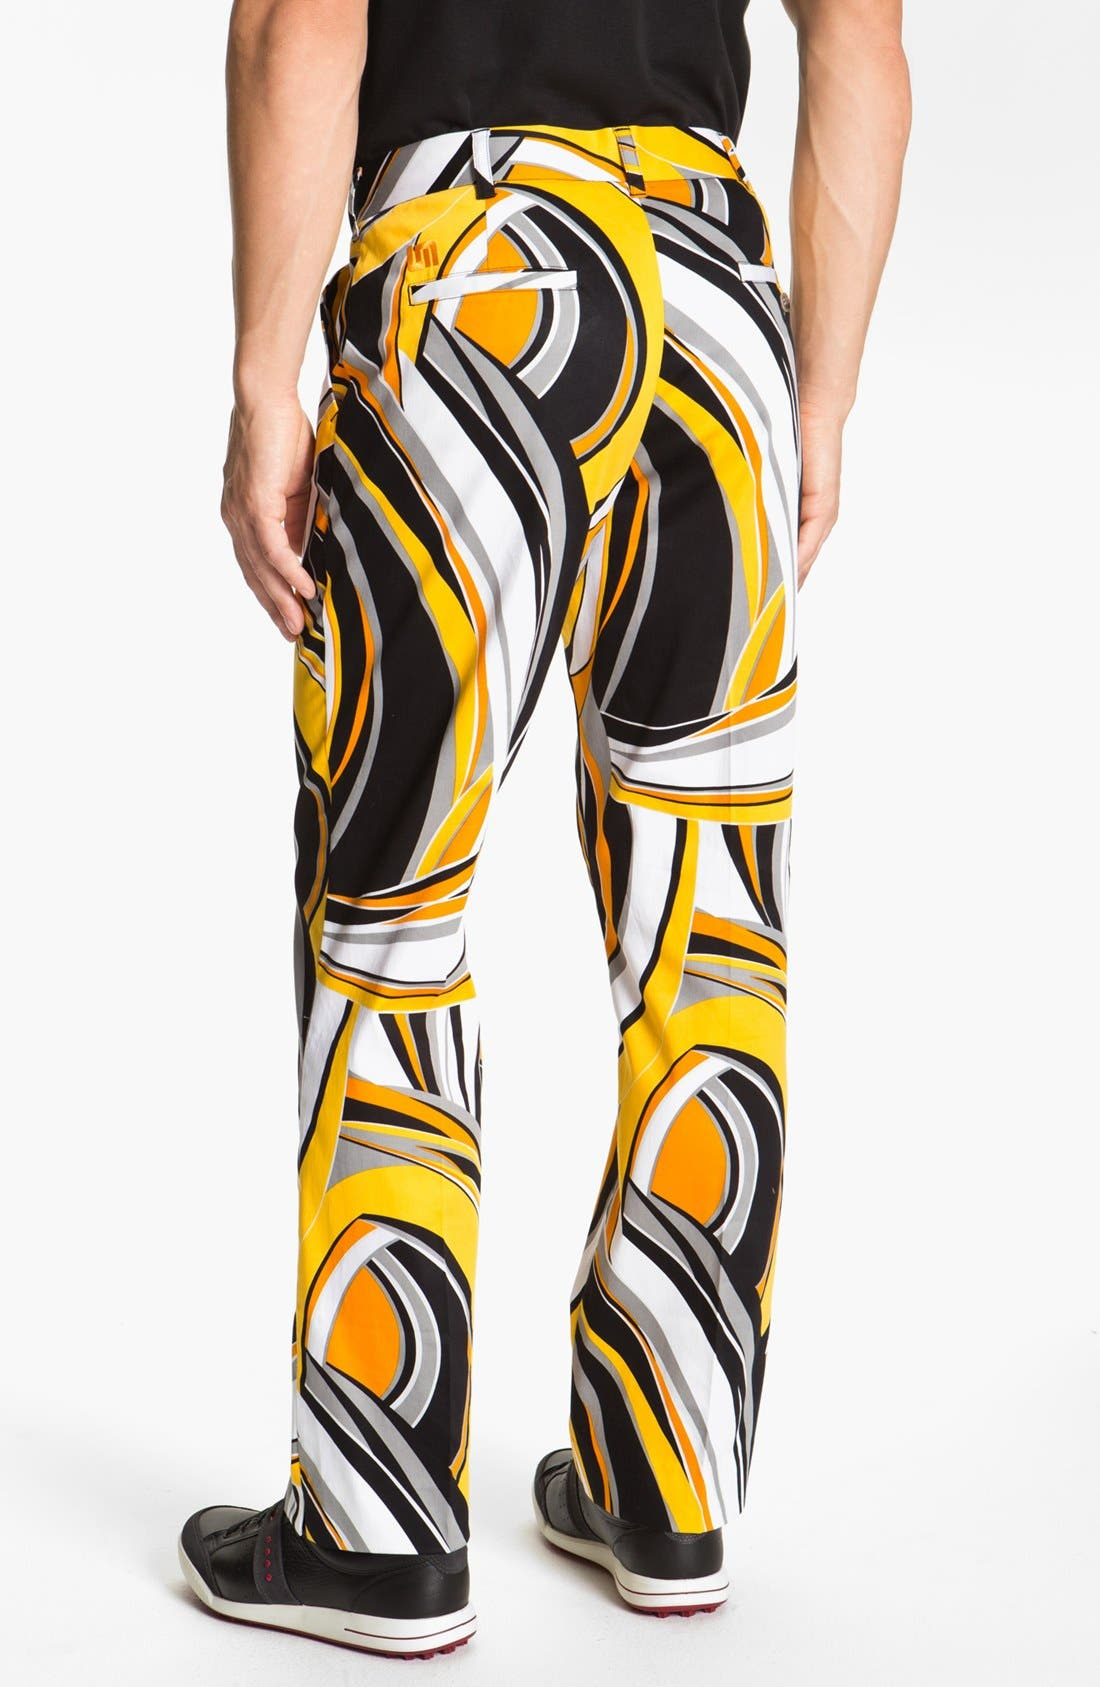 LOUD MOUTH GOLF,                             Loudmouth Golf 'Swirls Gone Wild' Golf Pants,                             Alternate thumbnail 3, color,                             700